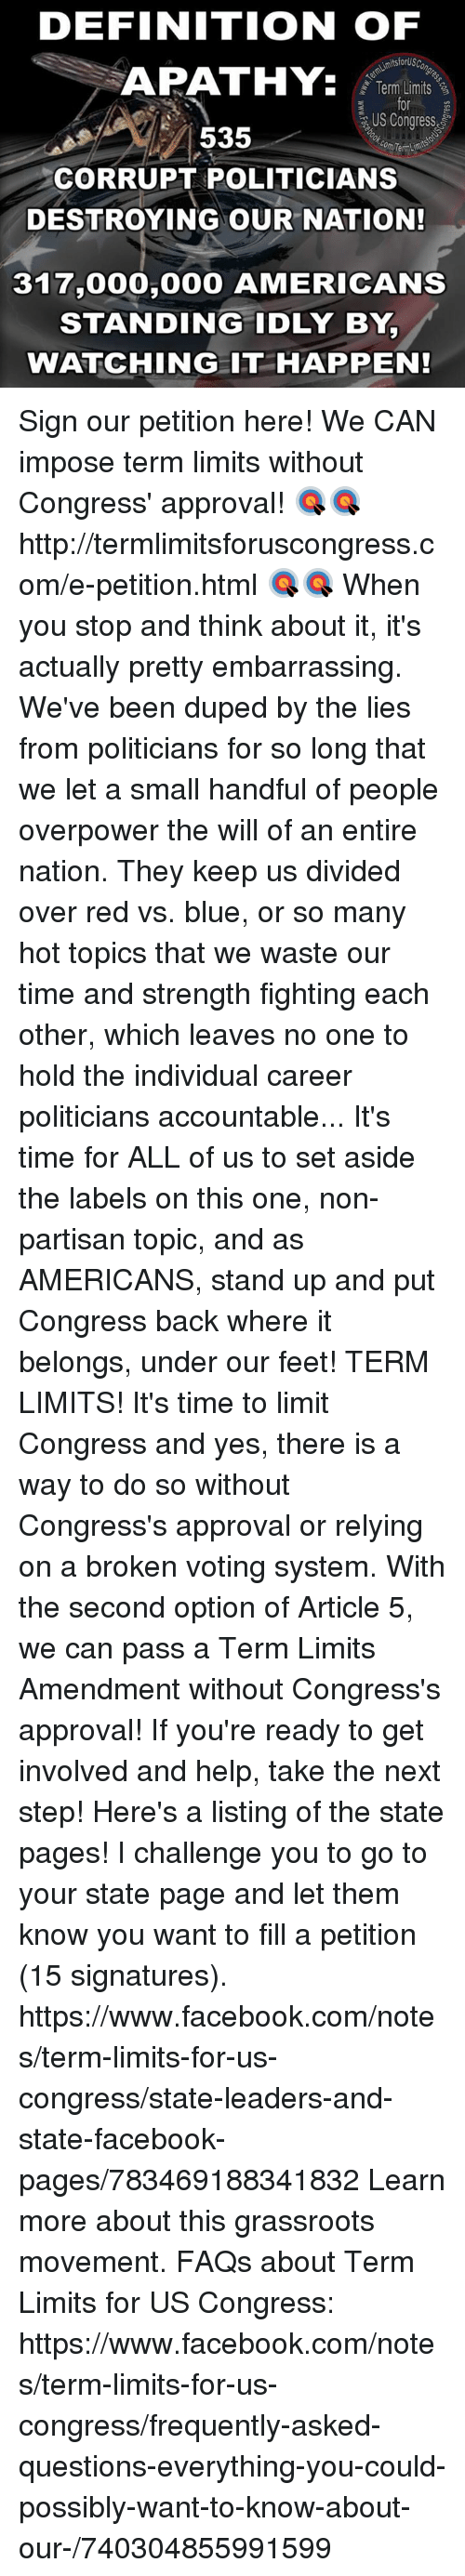 Red vs. Blue: DEFINITION OF  itsforUSC  APATHY.  Term Limits  US Congress  535  CORRUPT POLITICIANS  DESTROYING OUR NATION!  317,000  AMERICANS  STANDING IDLY BY,  WATCHING IT HAPPEN! Sign our petition here! We CAN impose term limits without Congress' approval! 🎯🎯http://termlimitsforuscongress.com/e-petition.html 🎯🎯  When you stop and think about it, it's actually pretty embarrassing.  We've been duped by the lies from politicians for so long that we let a small handful of people overpower the will of an entire nation.  They keep us divided over red vs. blue, or so many hot topics that we waste our time and strength fighting each other, which leaves no one to hold the individual career politicians accountable...  It's time for ALL of us to set aside the labels on this one, non-partisan topic, and as AMERICANS, stand up and put Congress back where it belongs, under our feet!  TERM LIMITS!  It's time to limit Congress and yes, there is a way to do so without Congress's approval or relying on a broken voting system.  With the second option of Article 5, we can pass a Term Limits Amendment without Congress's approval!  If you're ready to get involved and help, take the next step! Here's a listing of the state pages! I challenge you to go to your state page and let them know you want to fill a petition (15 signatures). https://www.facebook.com/notes/term-limits-for-us-congress/state-leaders-and-state-facebook-pages/783469188341832  Learn more about this grassroots movement. FAQs about Term Limits for US Congress: https://www.facebook.com/notes/term-limits-for-us-congress/frequently-asked-questions-everything-you-could-possibly-want-to-know-about-our-/740304855991599